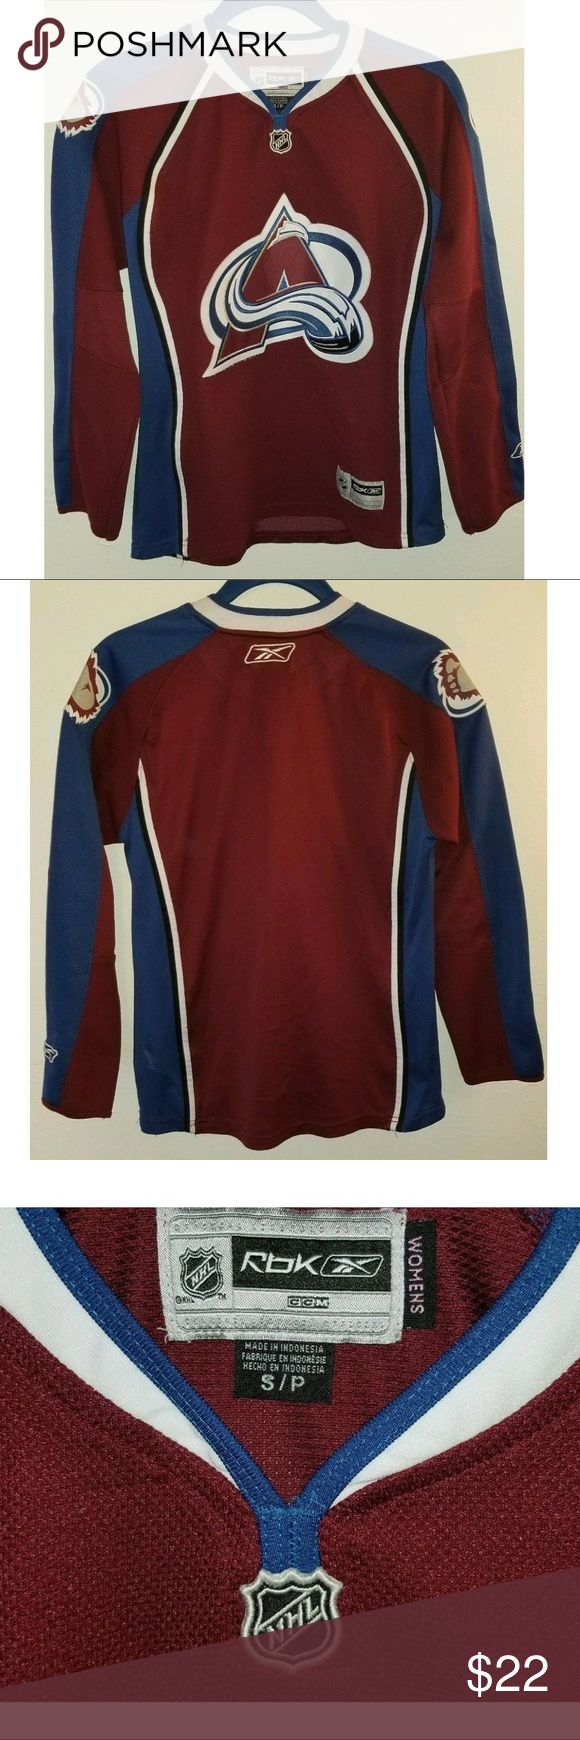 REEBOK Colorado Avalanche NHL Hockey Jersey SMALL Excellent used condition. No rips, tears, or stains. Reebok Tops Tees - Long Sleeve